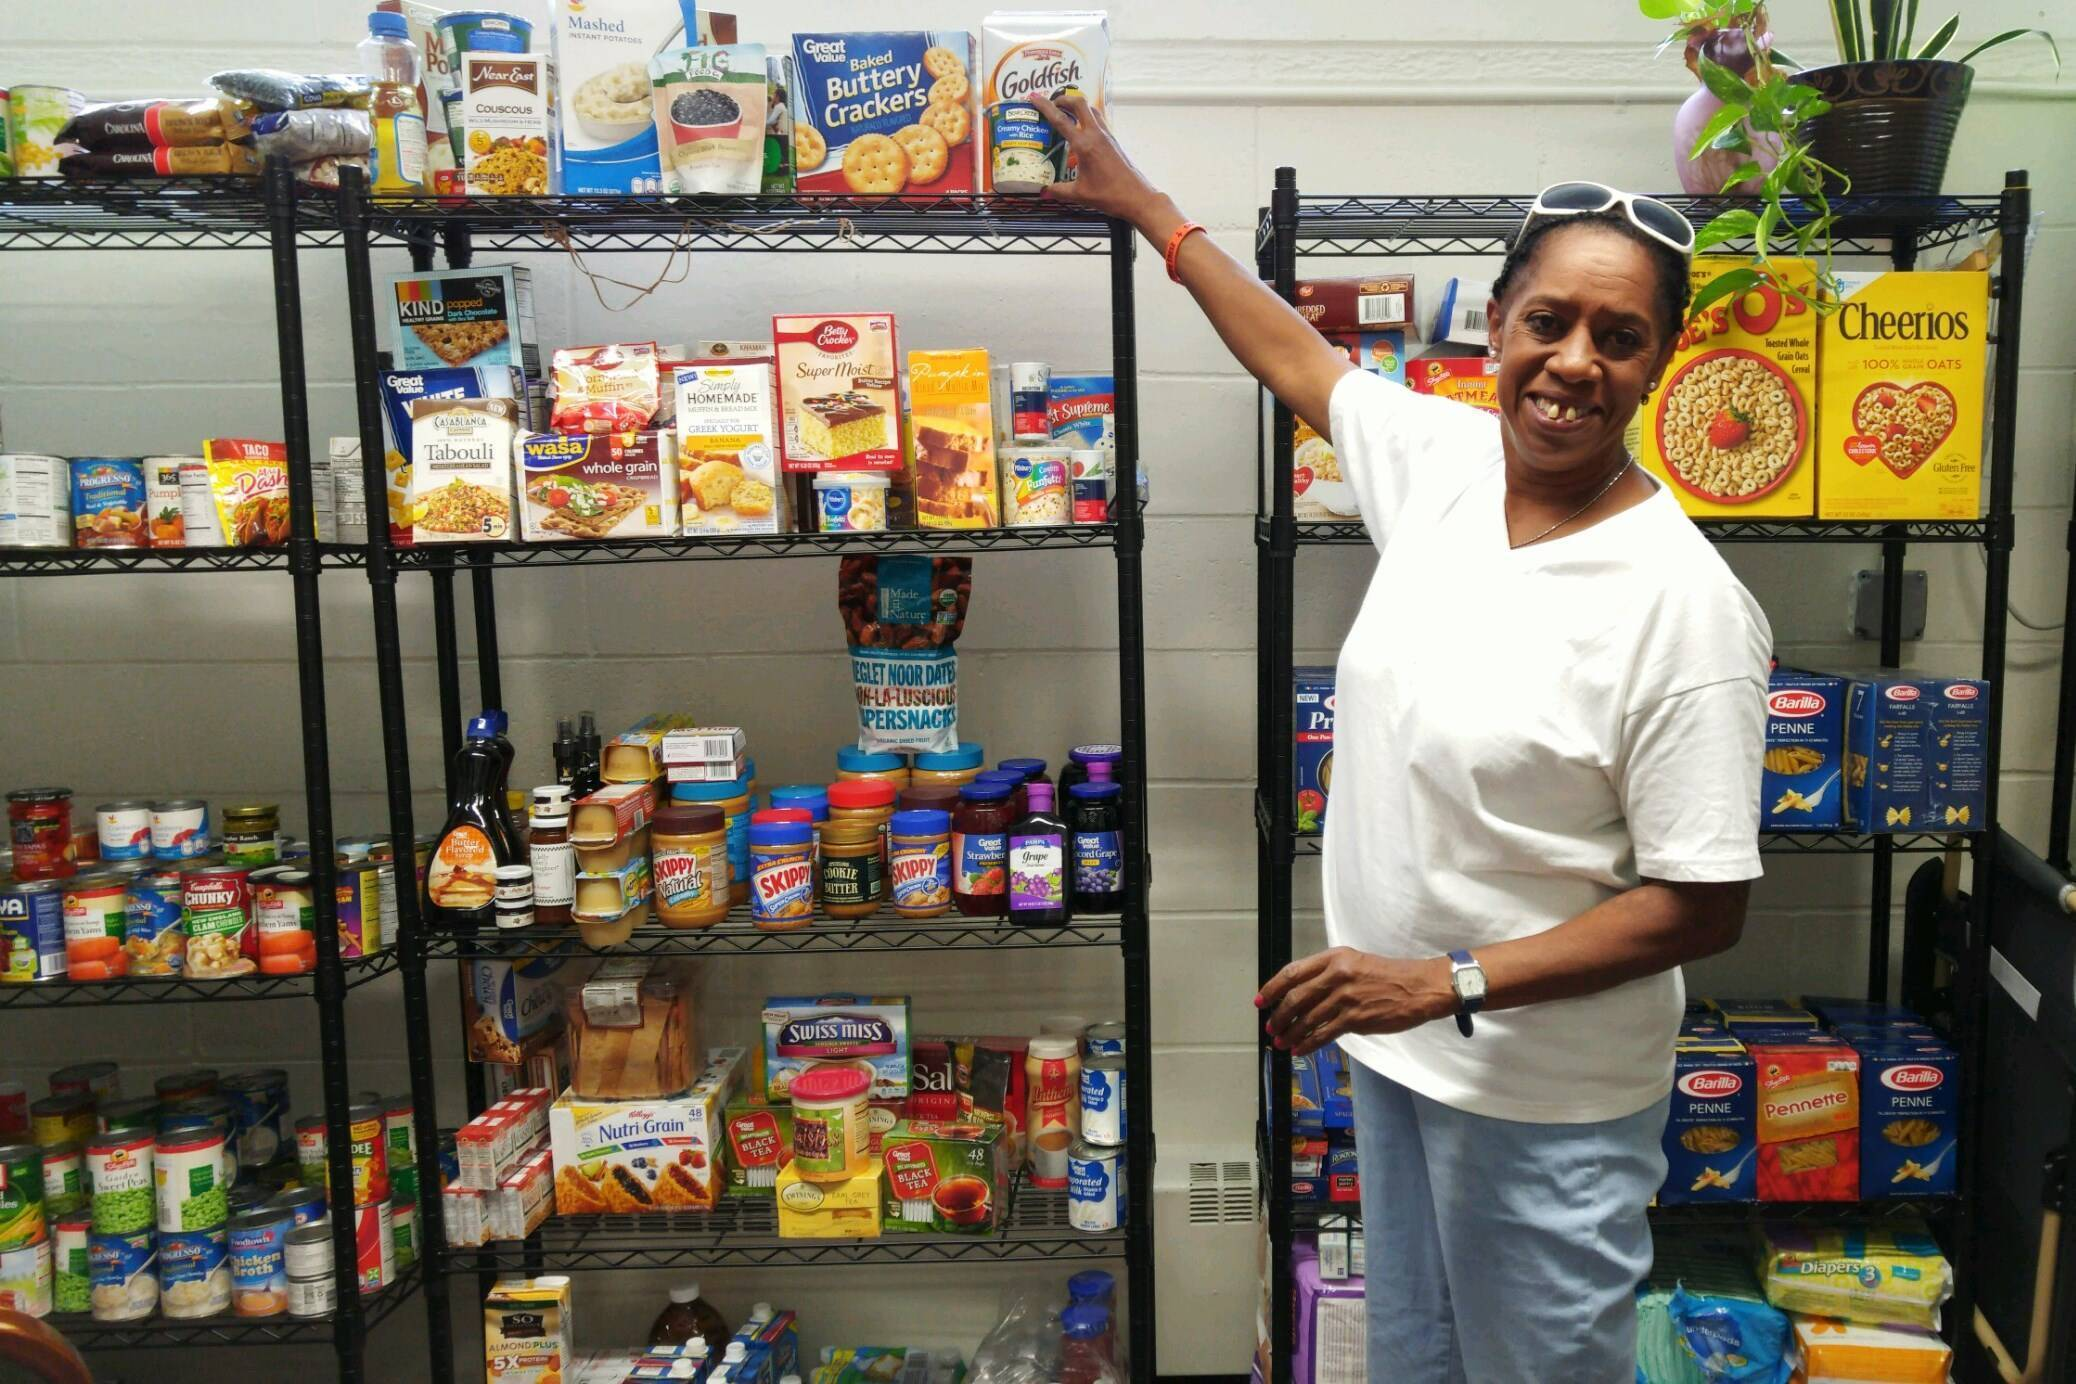 82b0e5a906aff027d3ff_10189ed0b31d377e927d_stocking_the_pantry.jpg